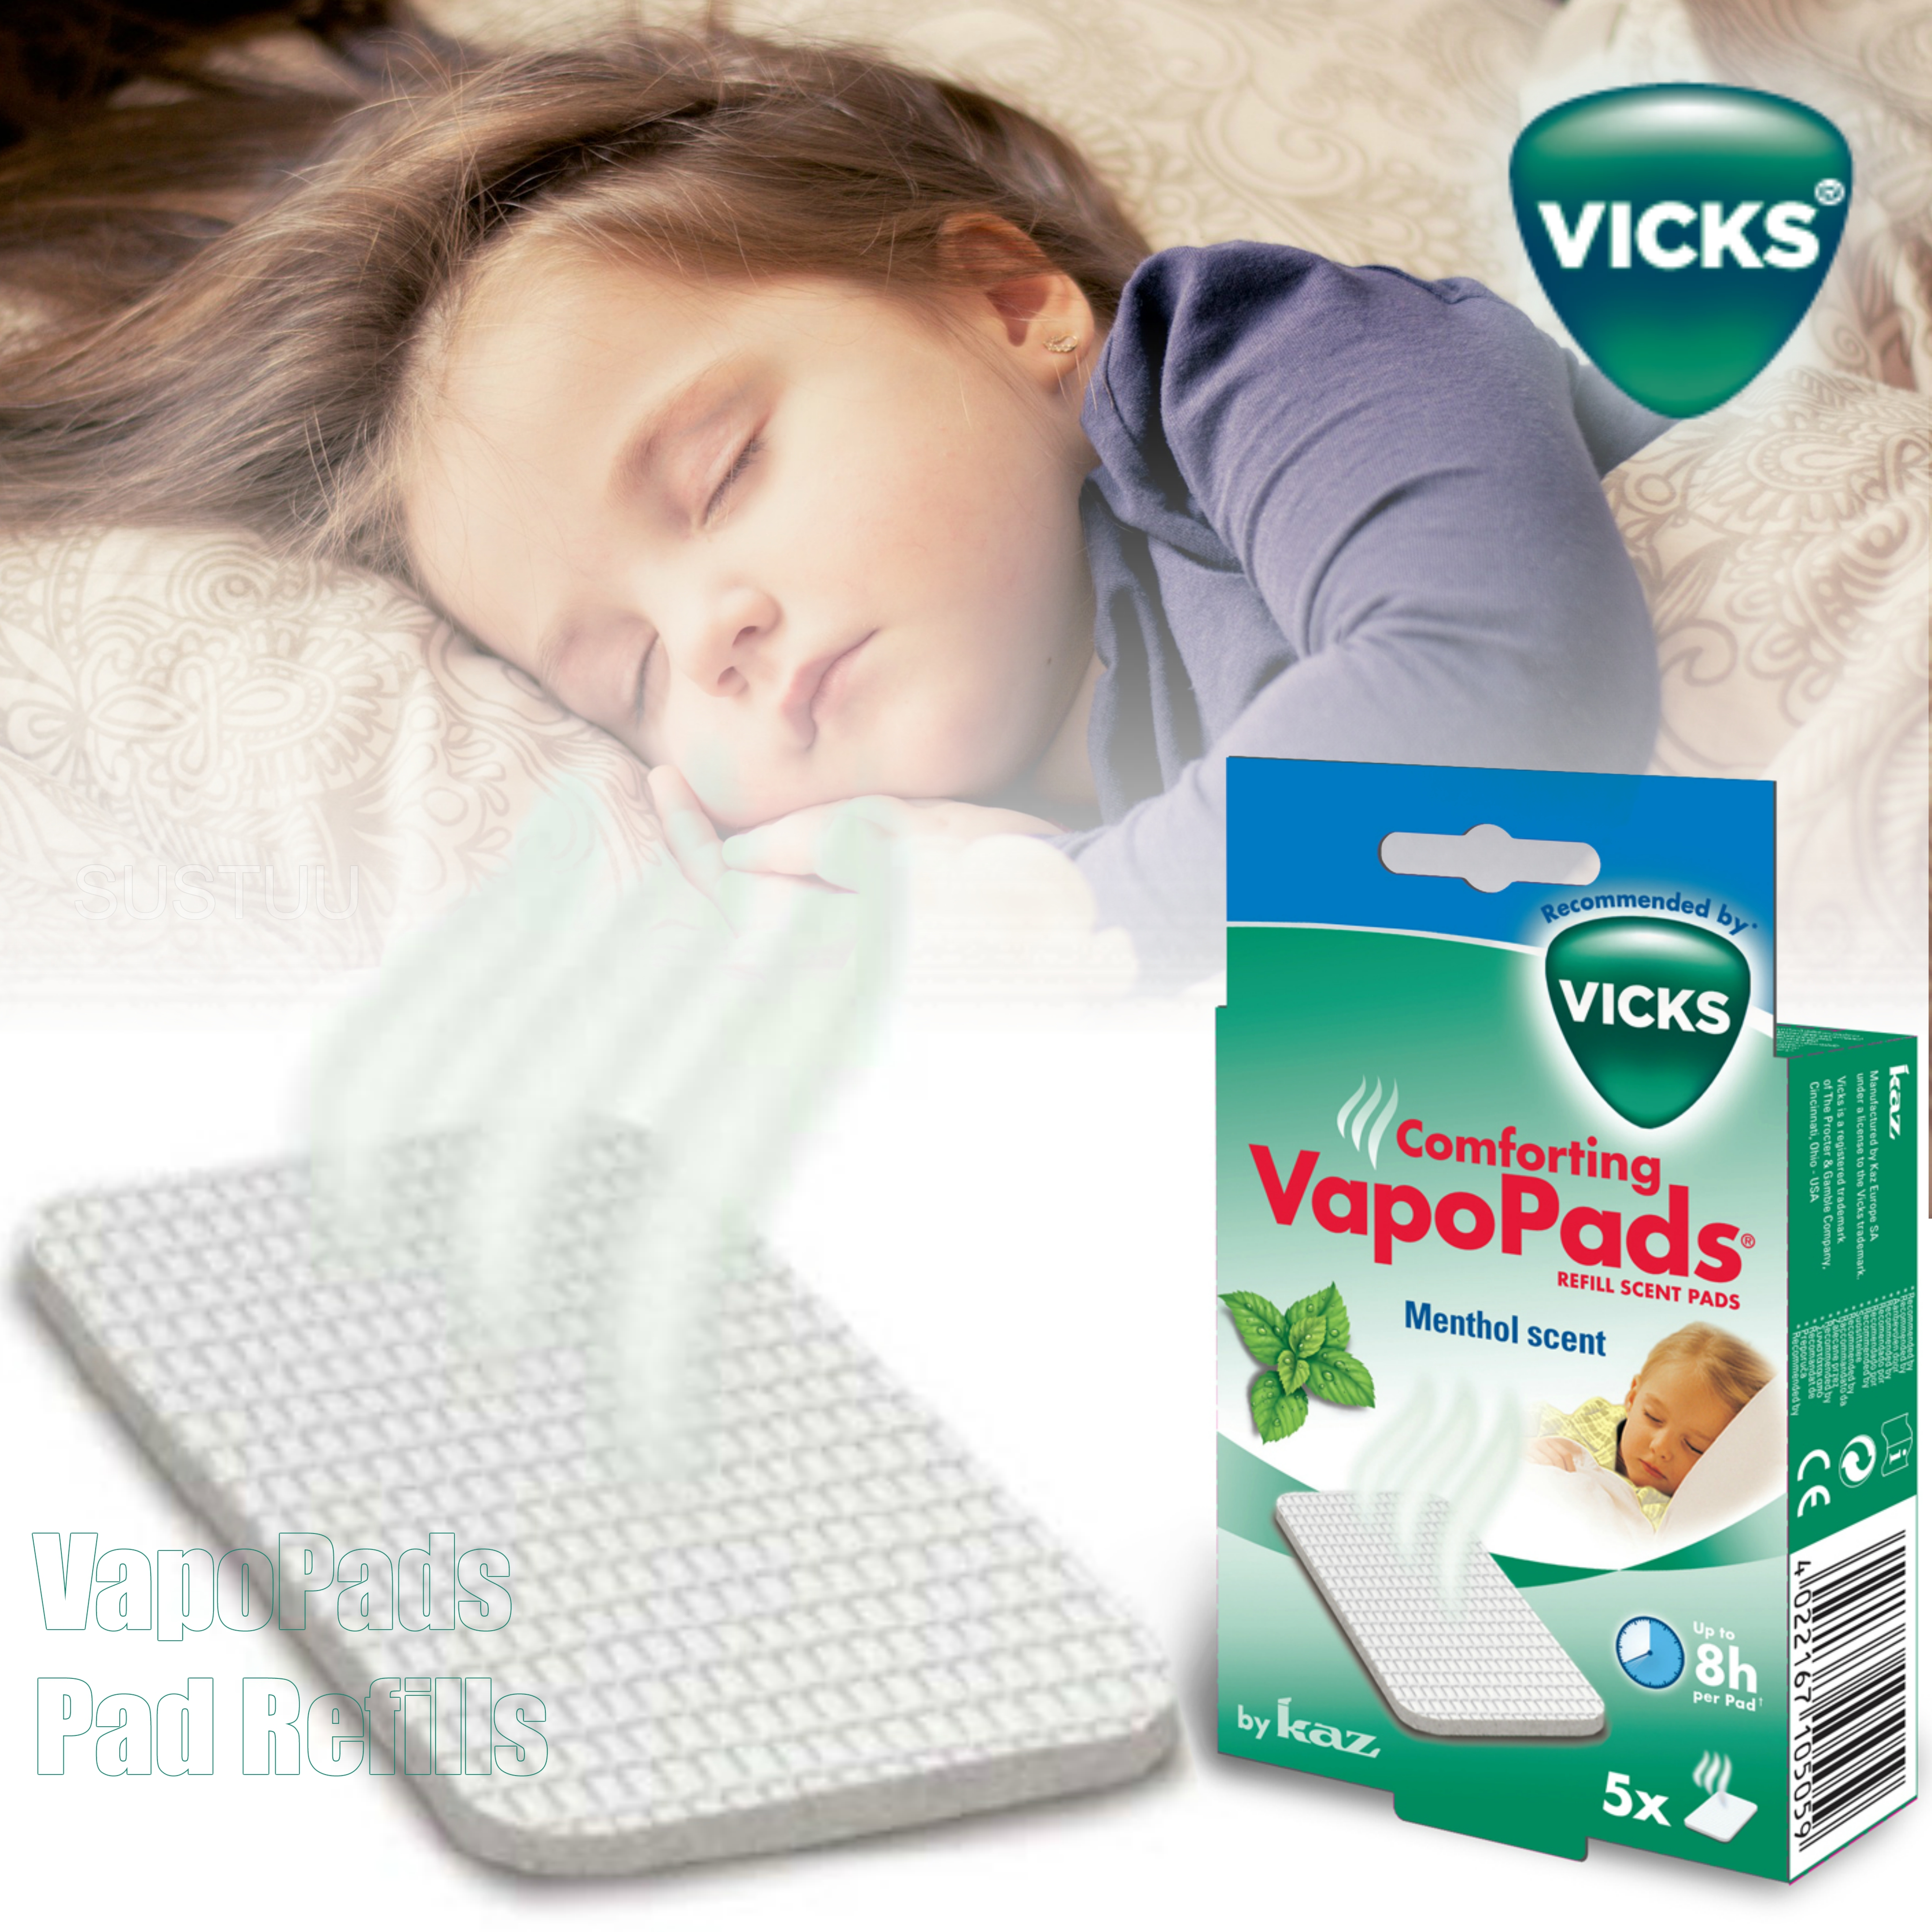 Vicks VapoPads Scent Refill|Waterless|Soothing Menthol|8 Hours Comfort|7 Pack